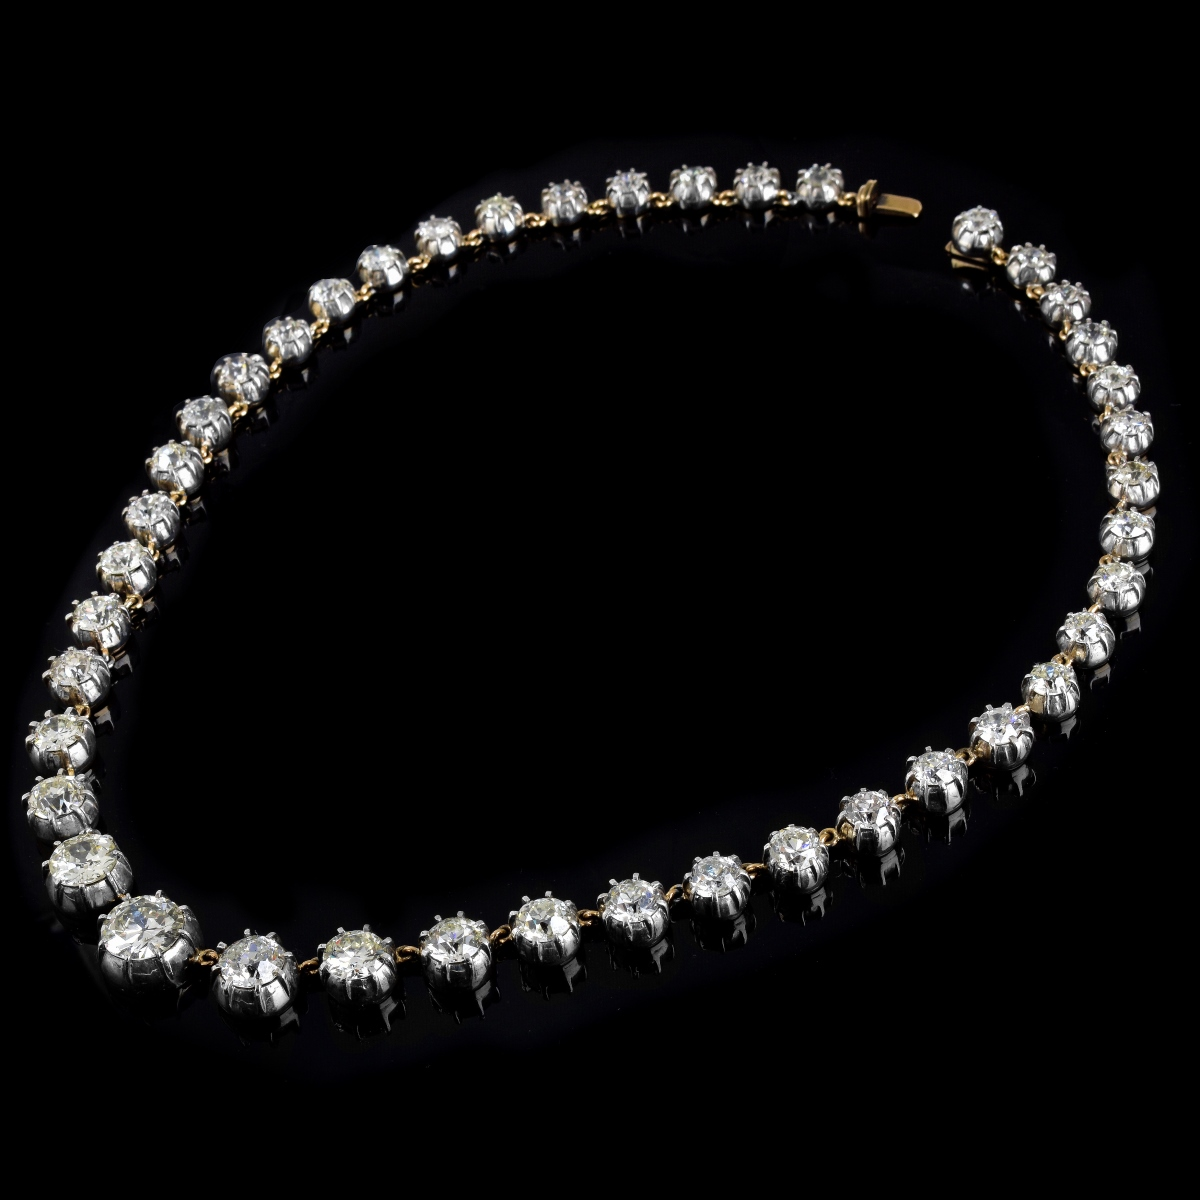 Antique 41.0ct Diamond Riviera Necklace